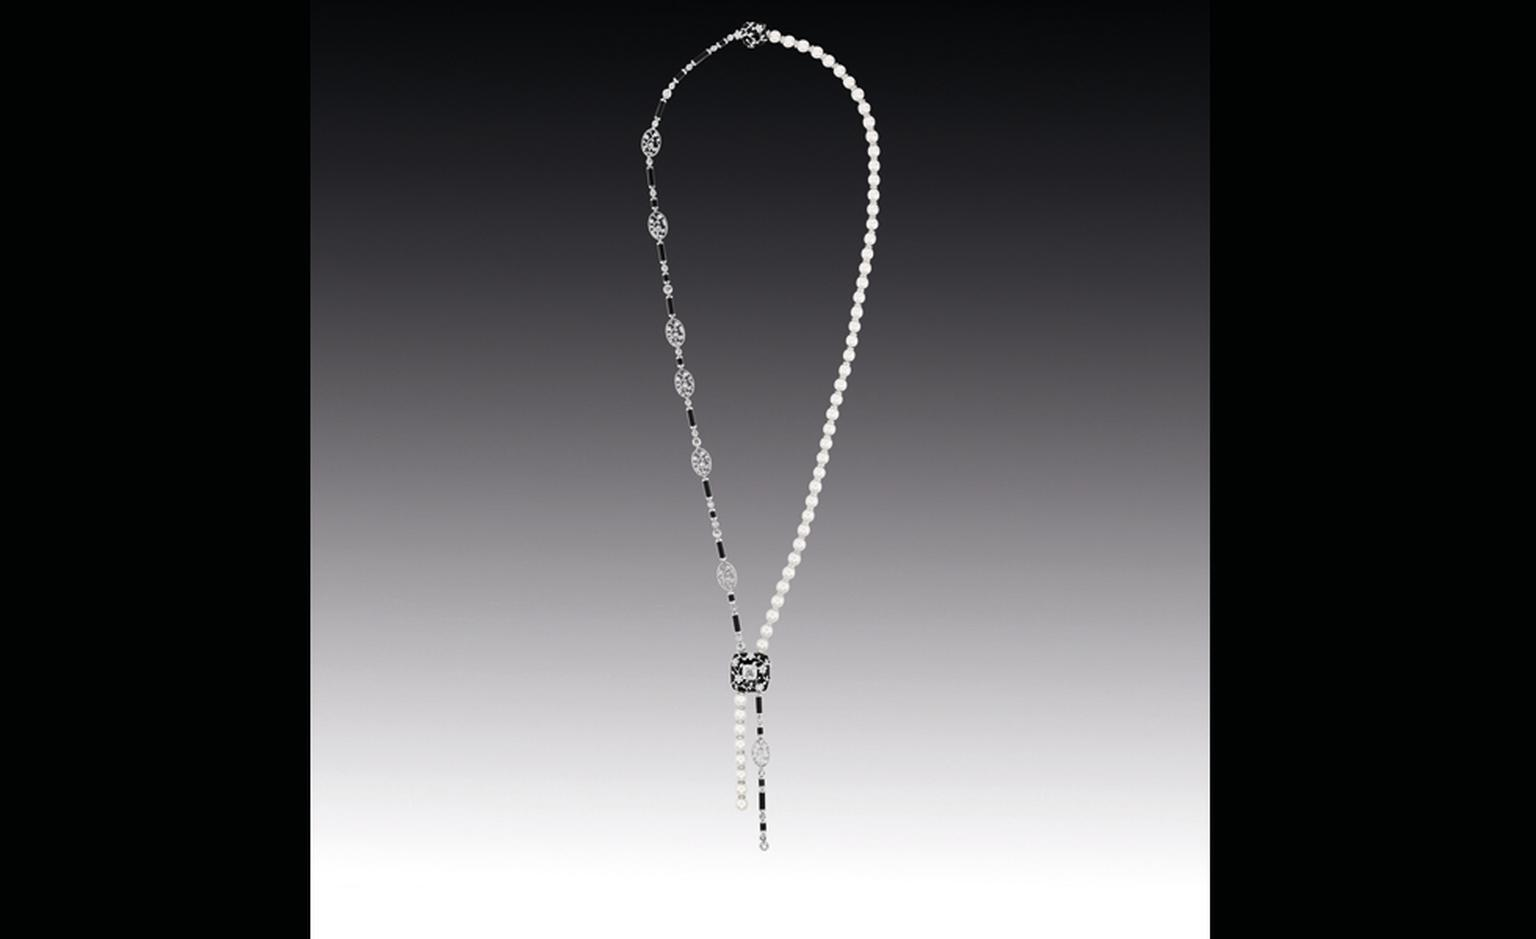 Chanel Contrastes collection: Collier Ombre de Charme. Necklace in white gold, diamonds, pearls, rock crystals and onyx.